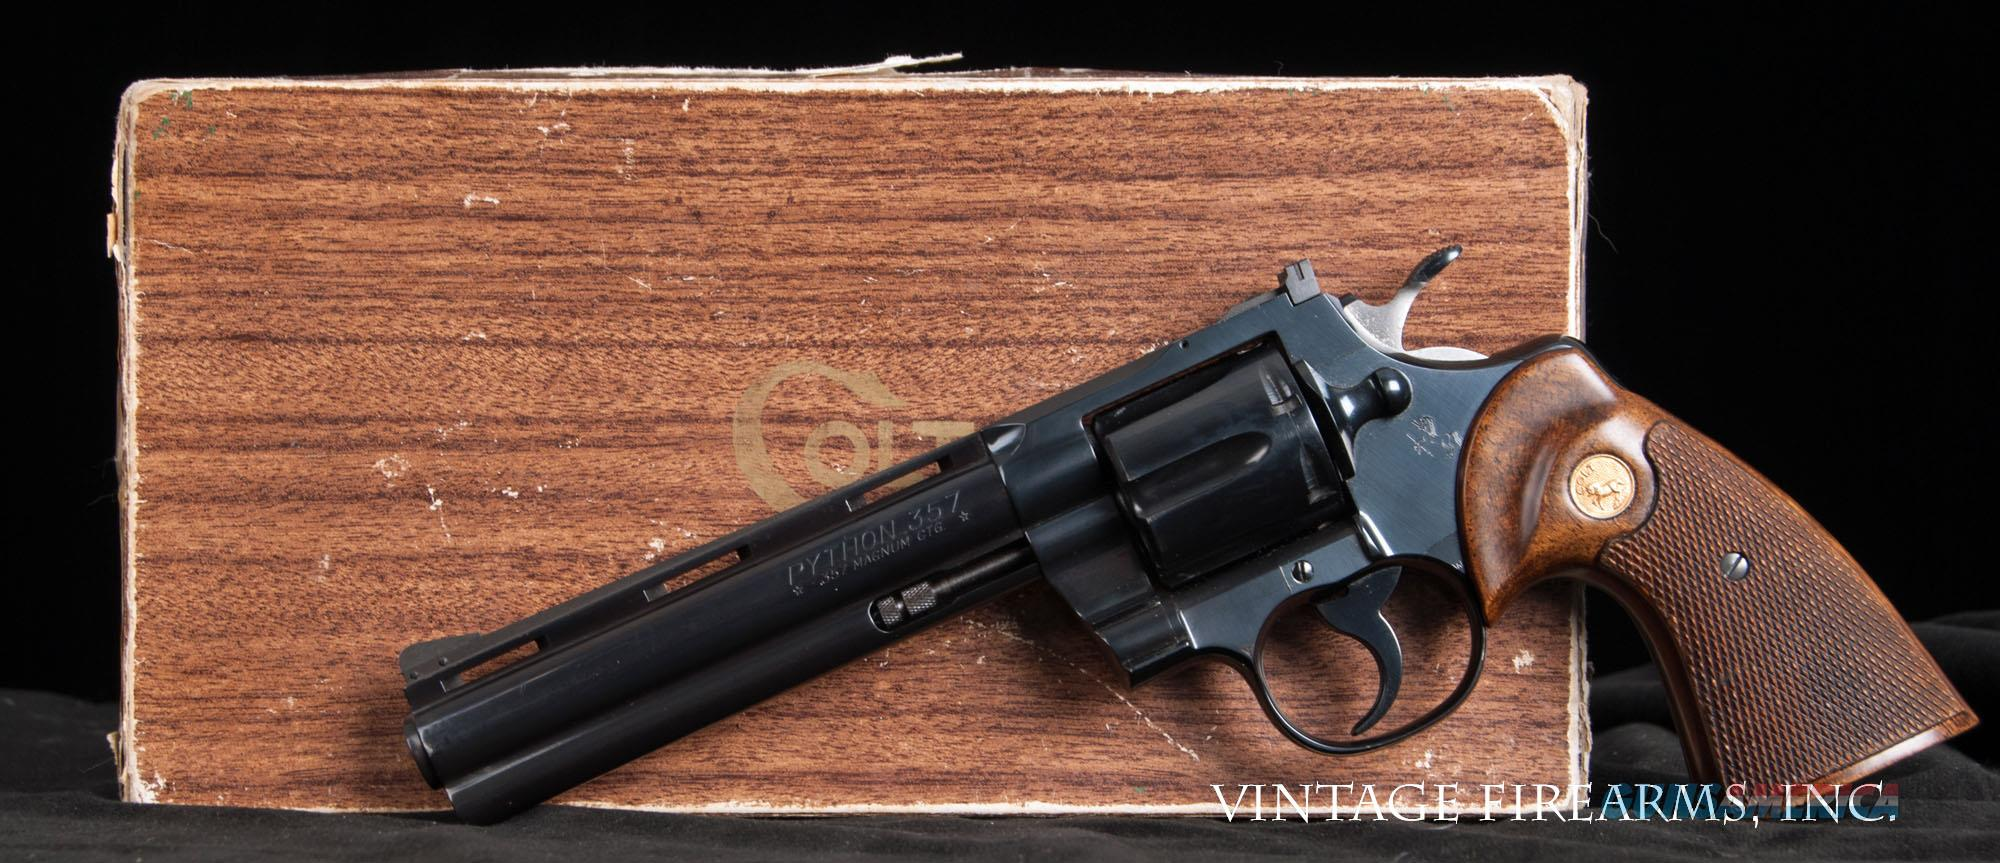 Colt Python .357 Revolver - 1961 W/BOX AND PAPERS, 99% FACTORY CONDITION   Guns > Pistols > Colt Double Action Revolvers- Modern